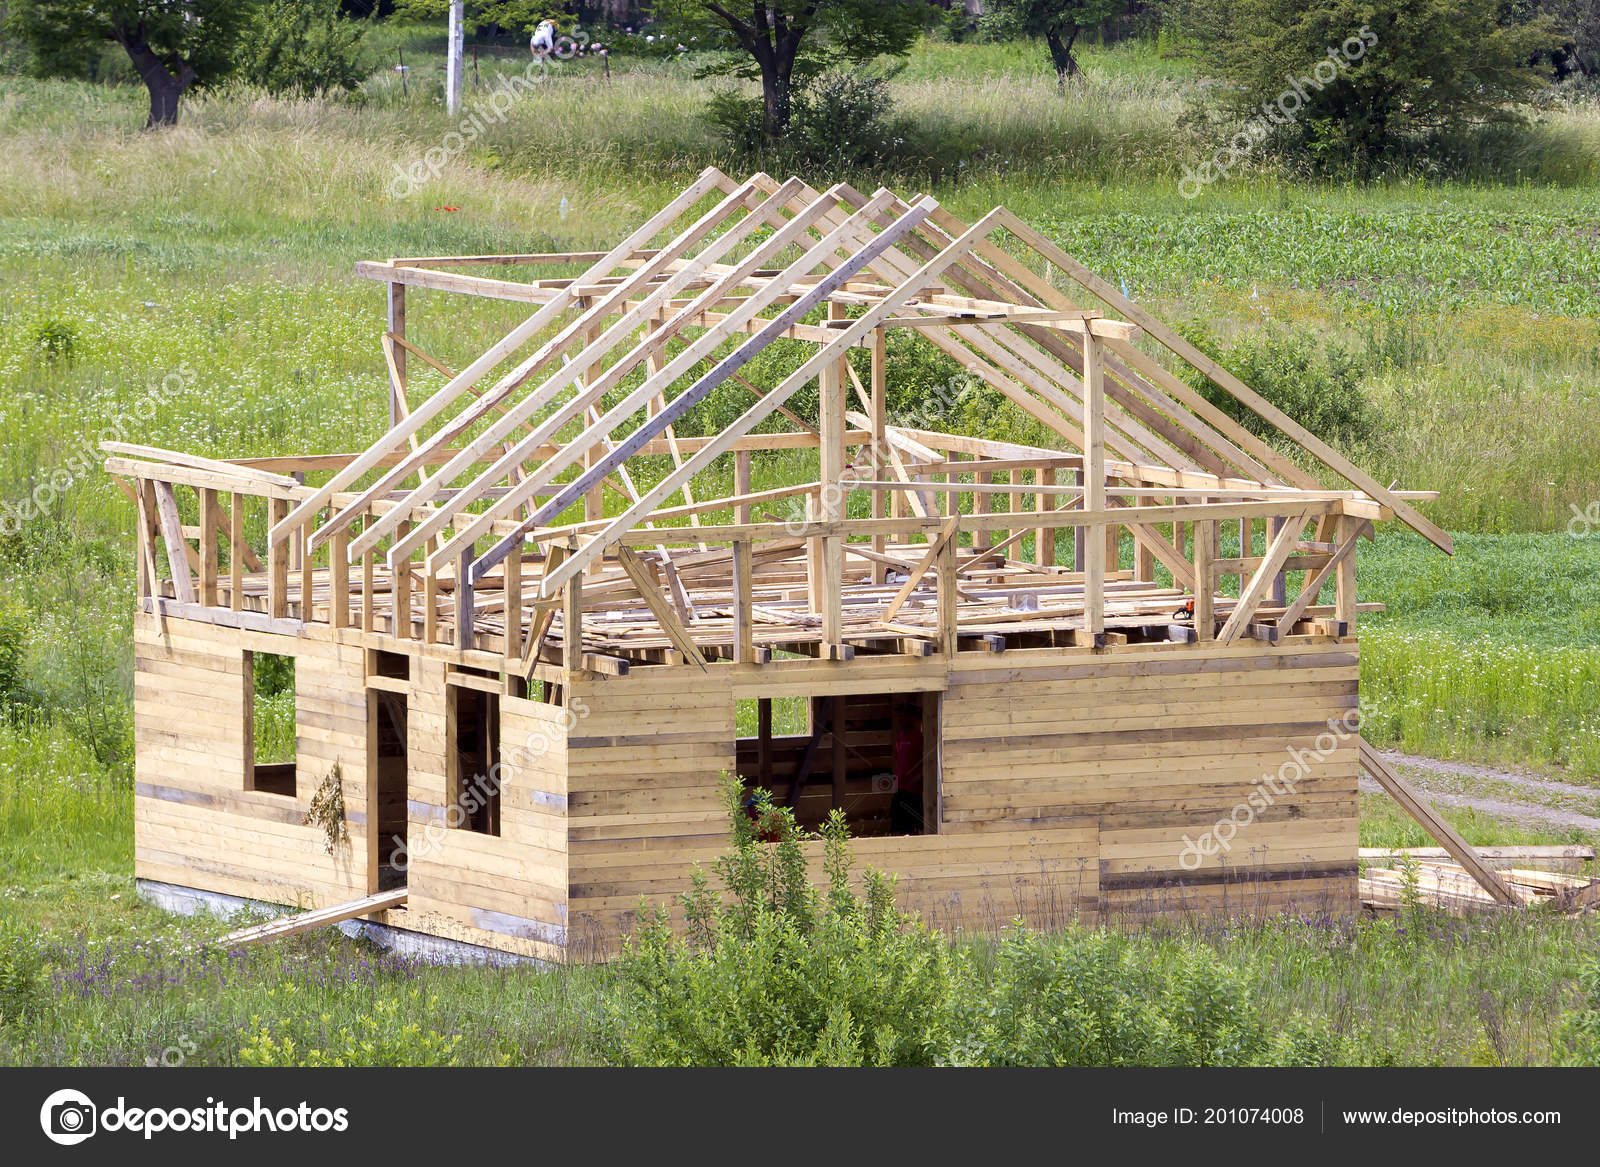 New Wooden Cottage Natural Lumber Materials Steep Plank Roof Frame